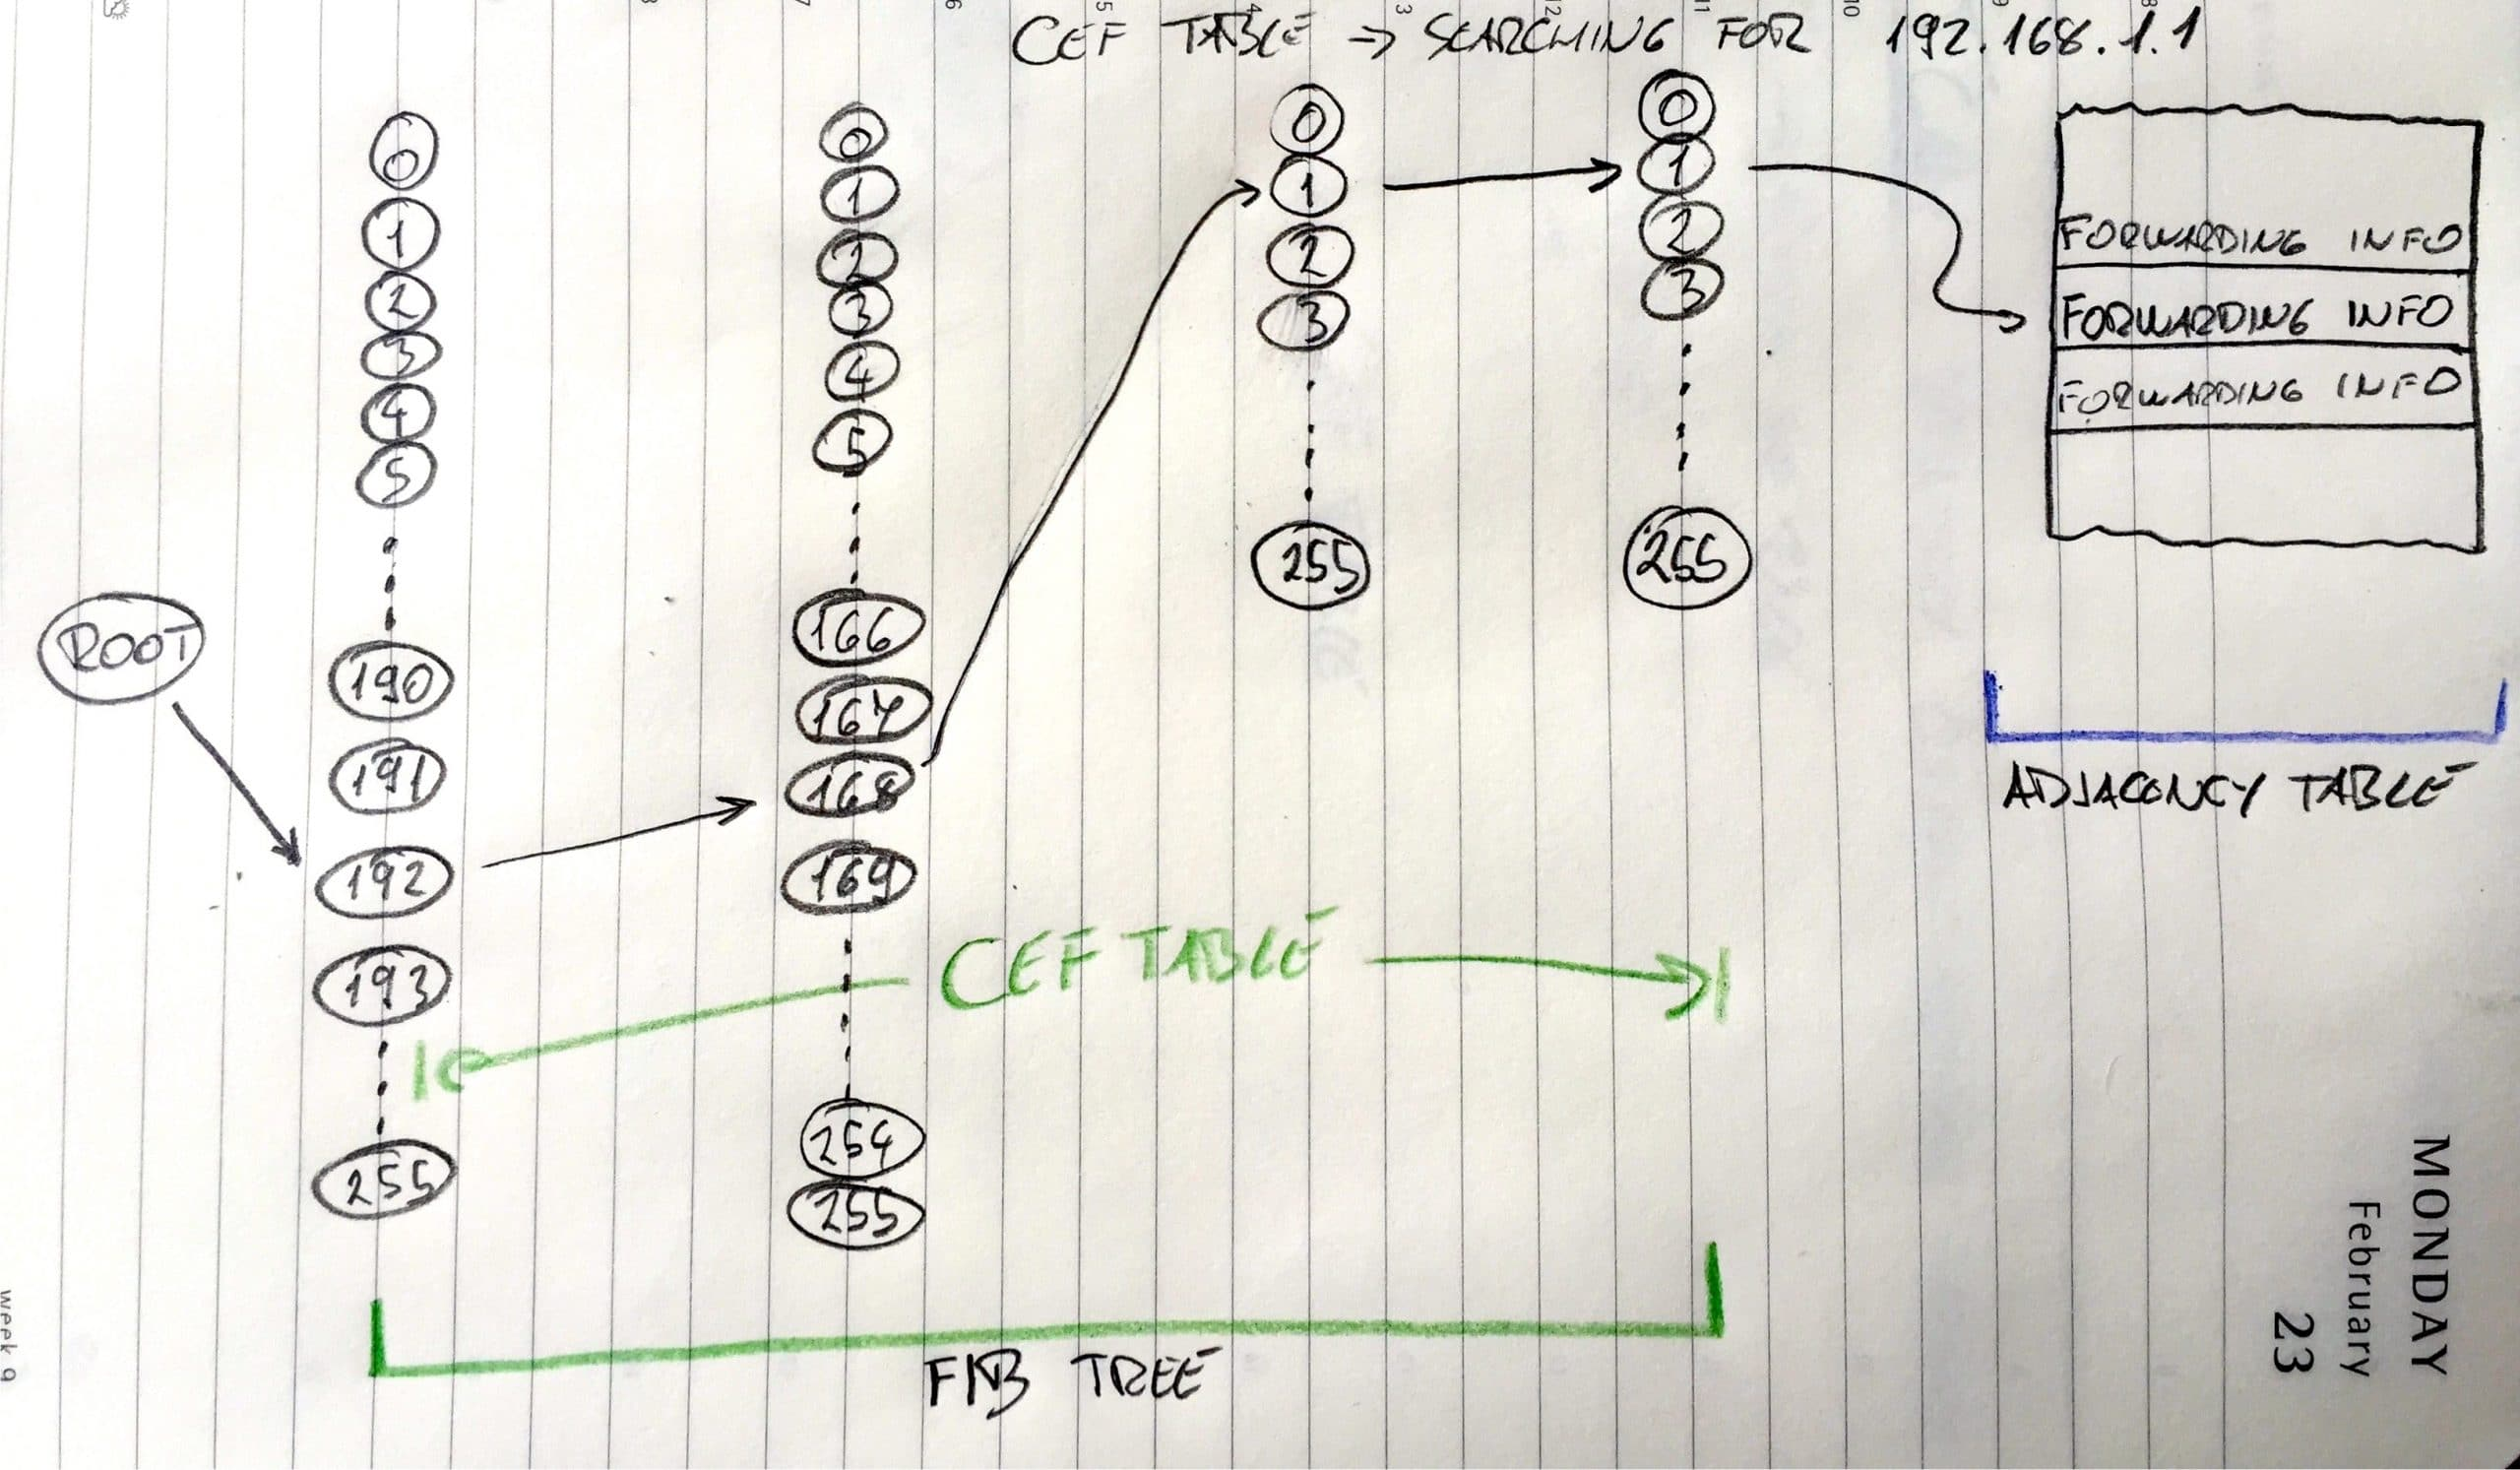 TCAM and CAM memory usage inside networking devices